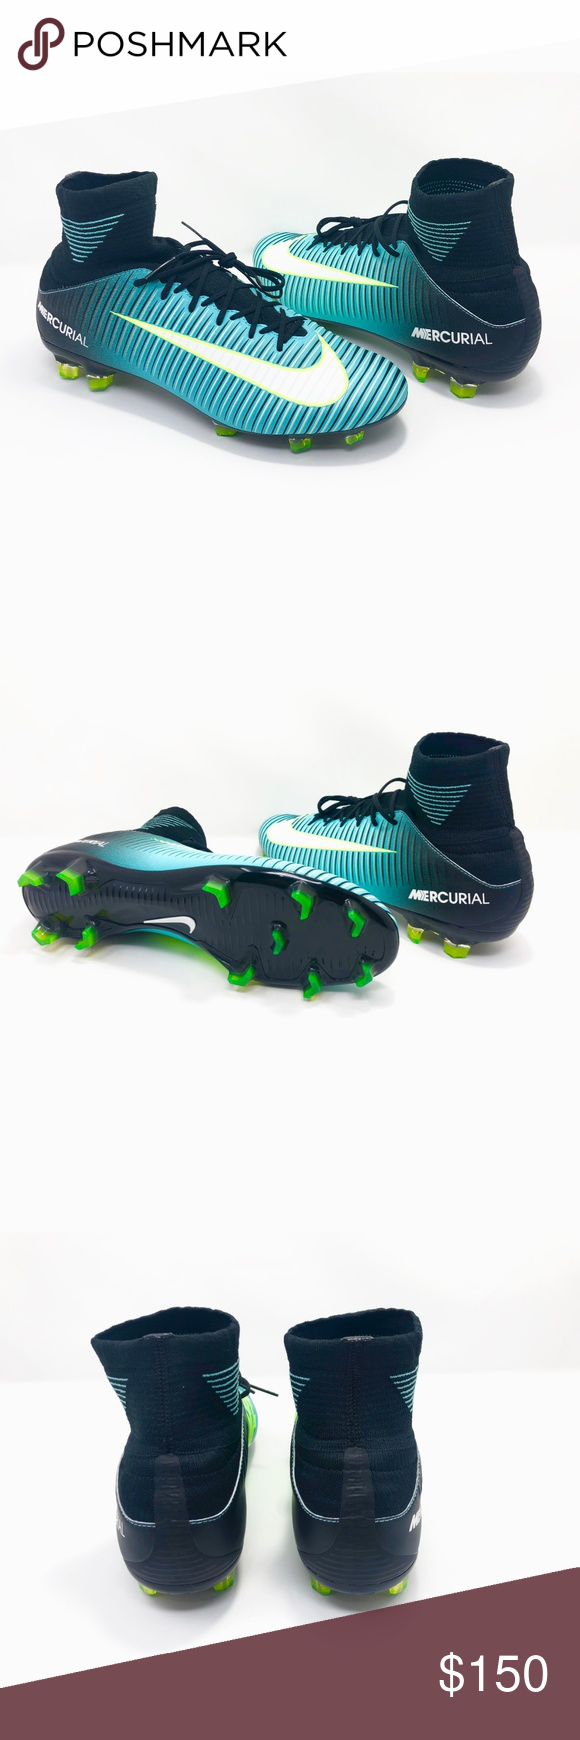 Nike Mercurial Veloce III DF Women s Soccer Cleat NIKE 897800-400 Nike  Mercurial Veloce III DF FG Women s soccer cleats Size 9.5 Aqua   Black Low  top New ... c7dd1f6a4